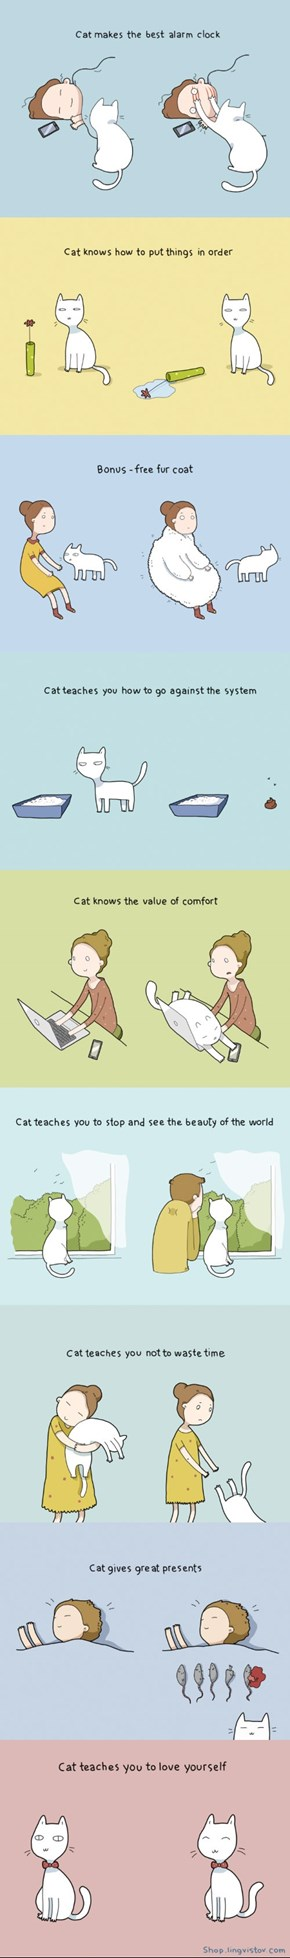 10 Benefits of Having a Cat